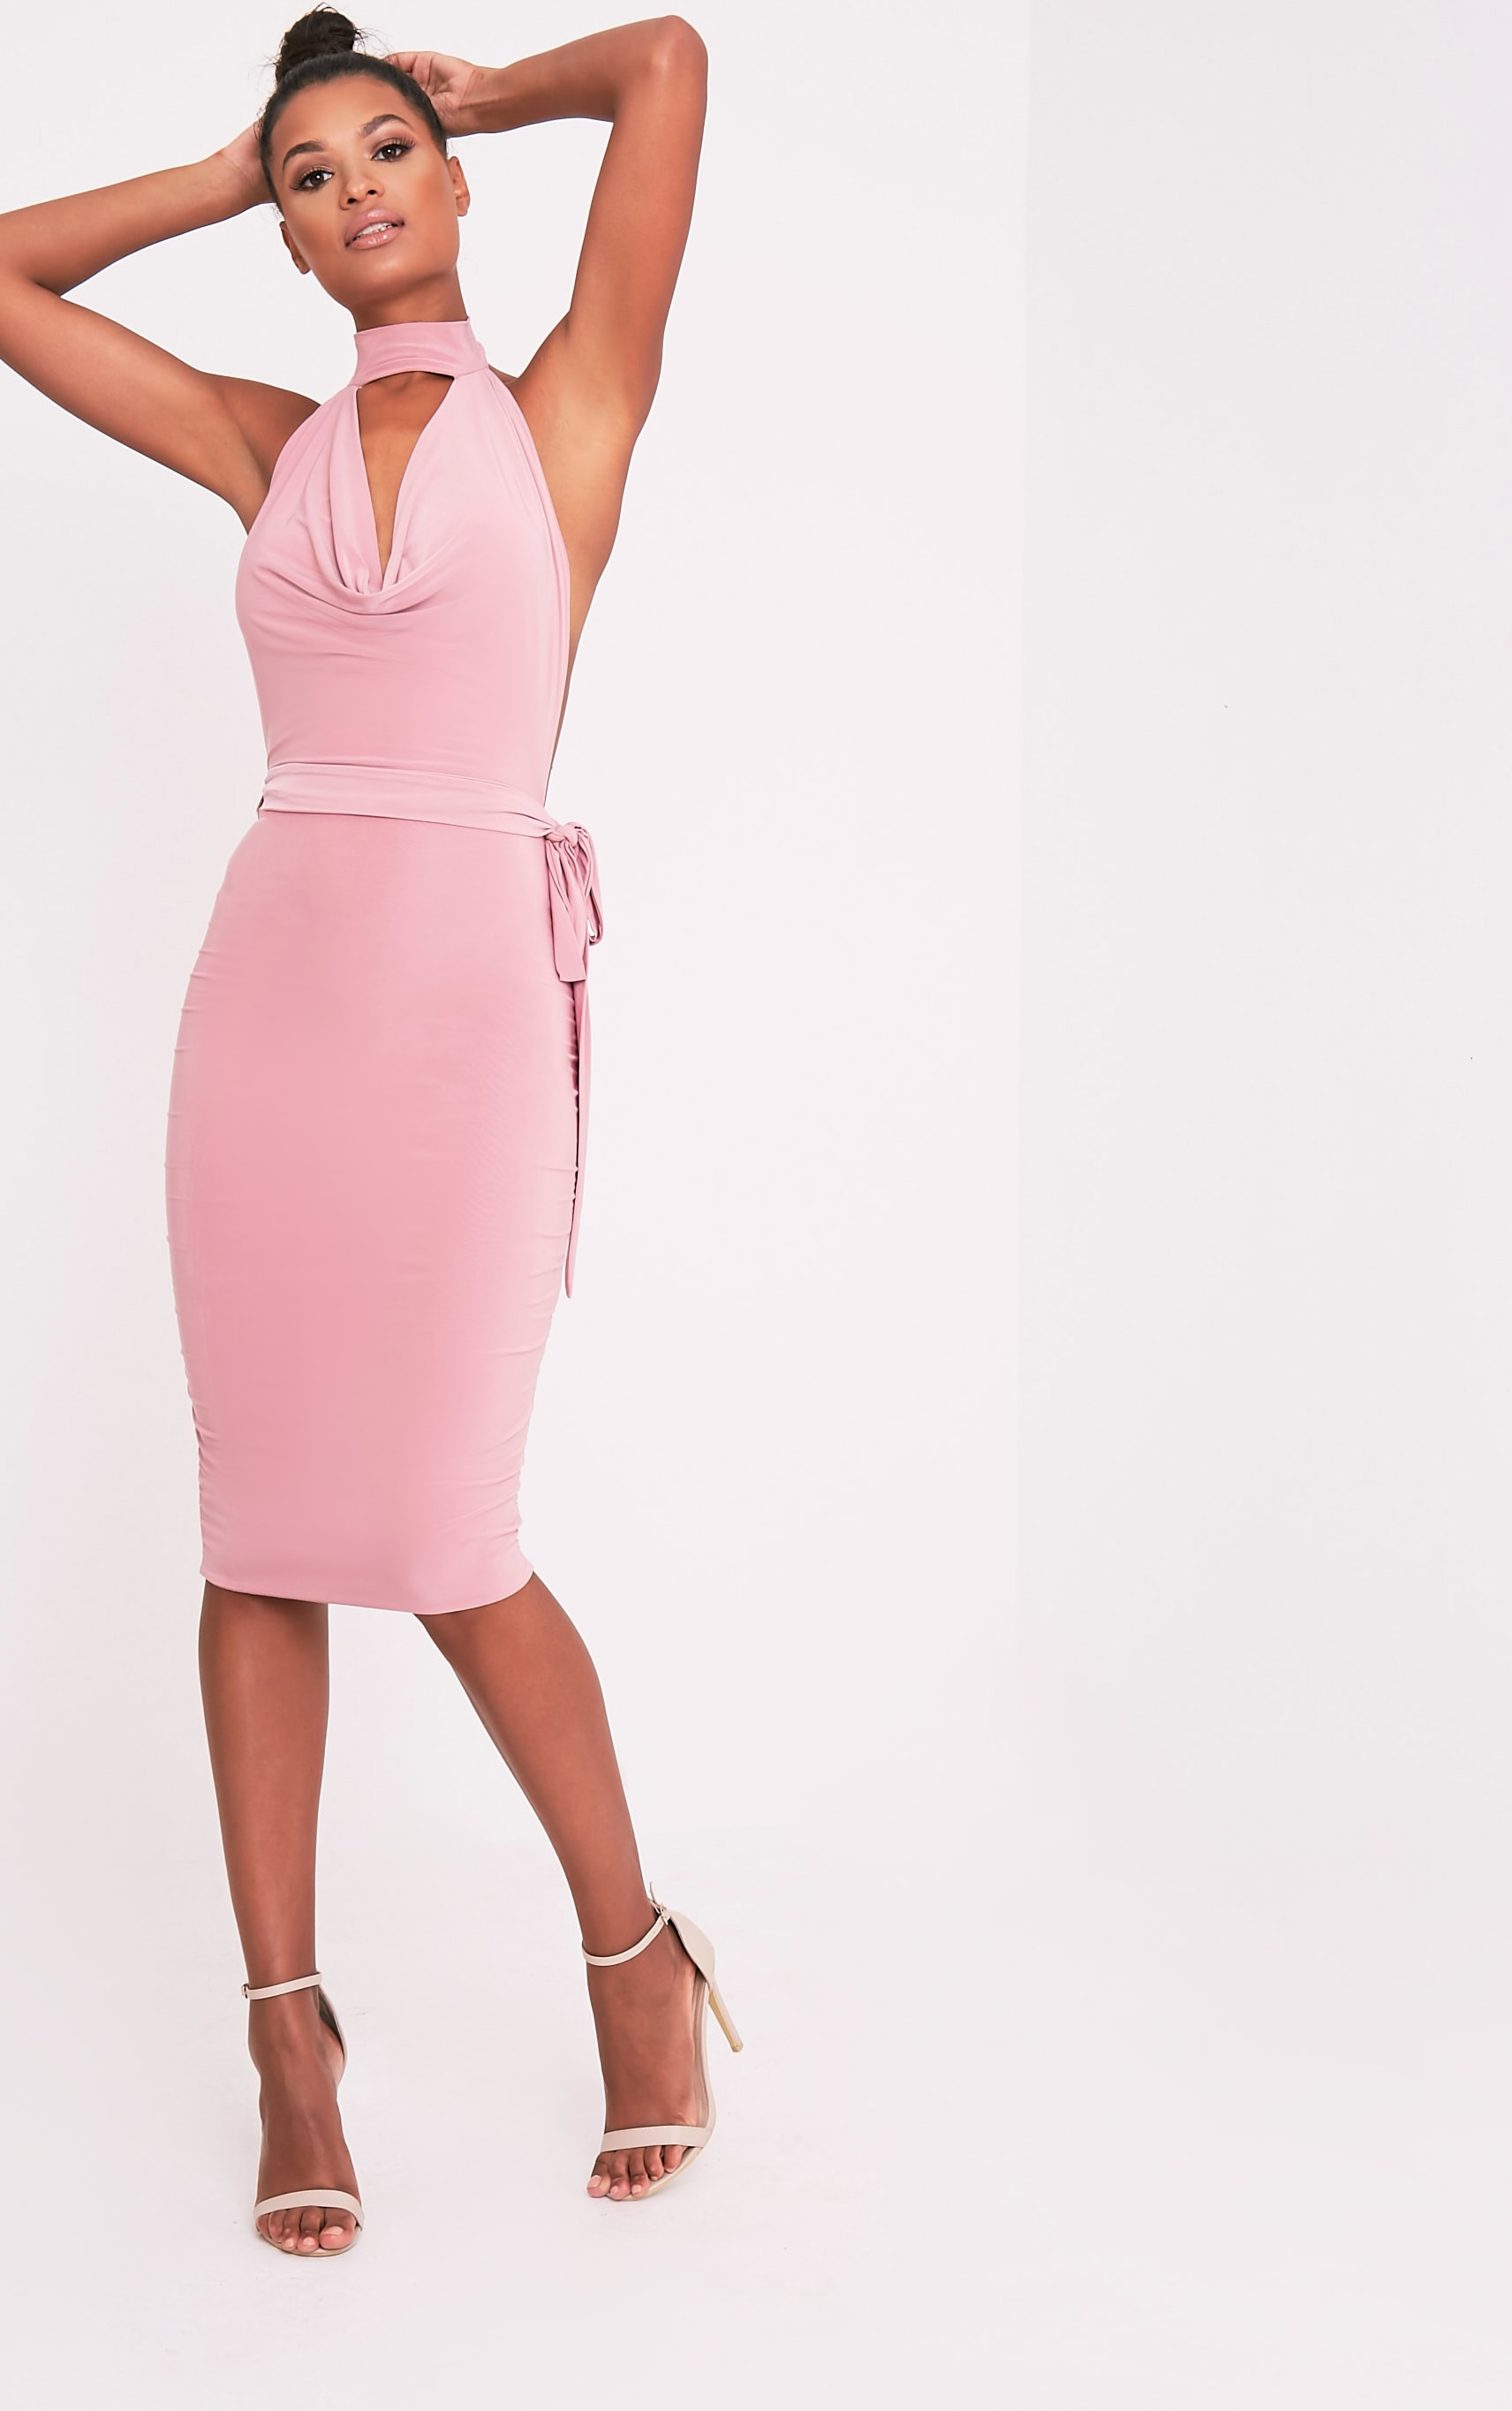 Carllia Pale Pink Slinky Choker Neck Cowl Midi Dress 2